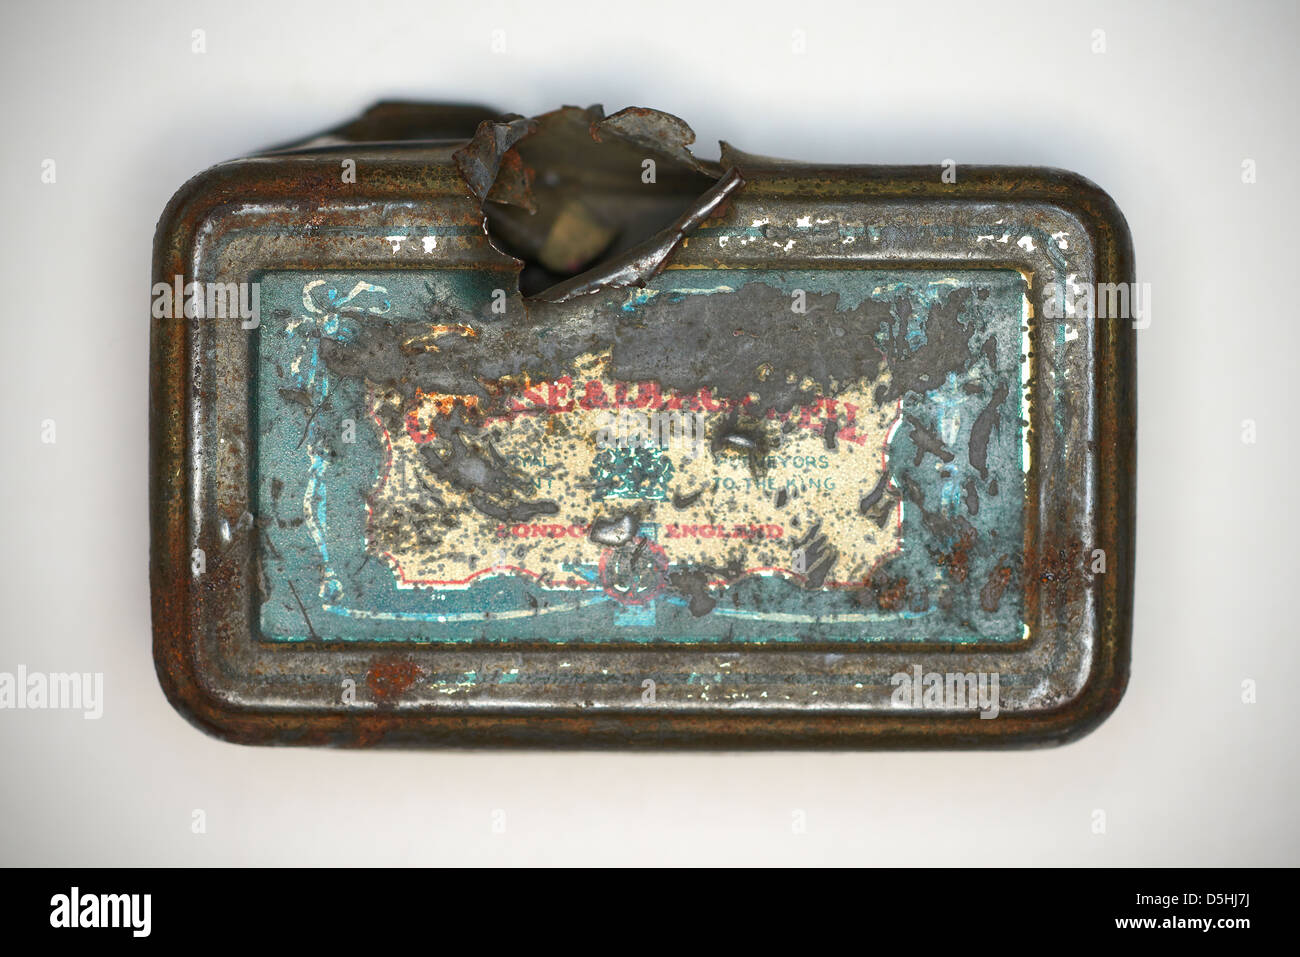 First world war tin World War 1 one Tin with bullet hole In grandfathers rucksack, saved his life. - Stock Image